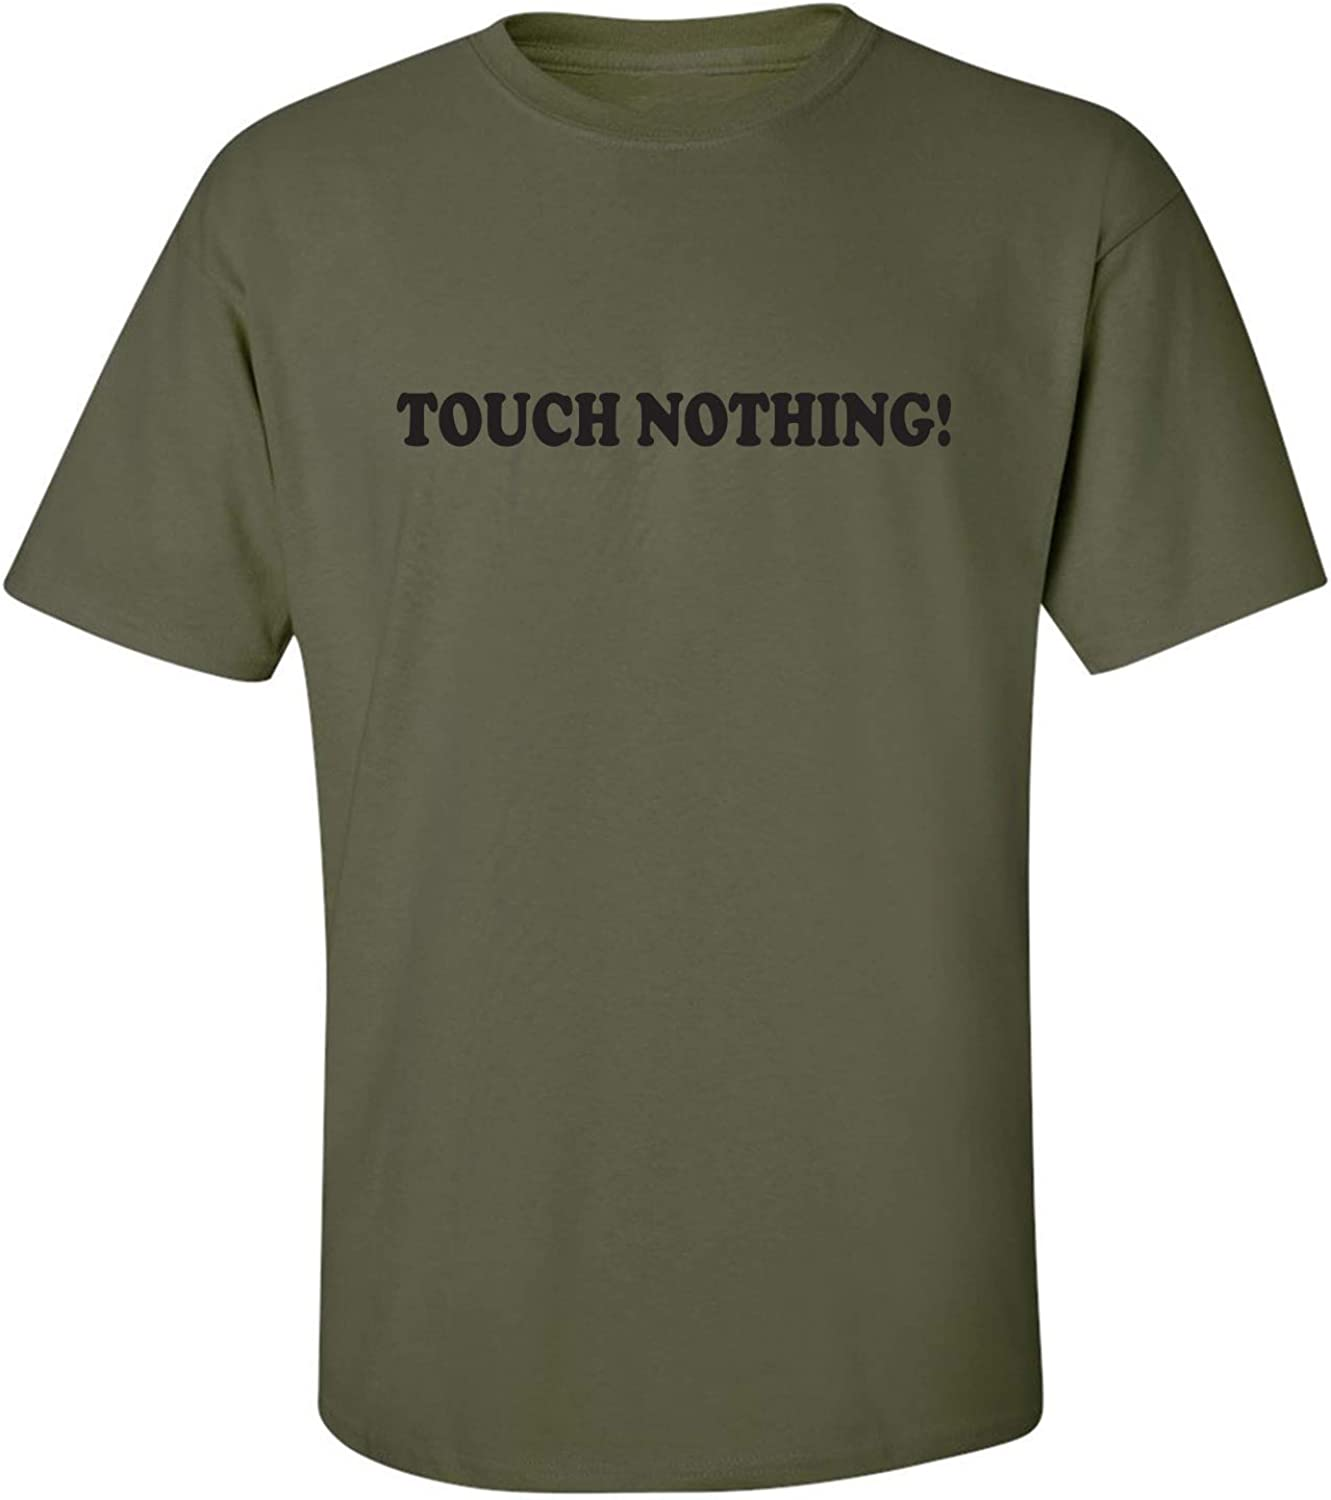 Touch Nothing! Adult Short Sleeve T-Shirt